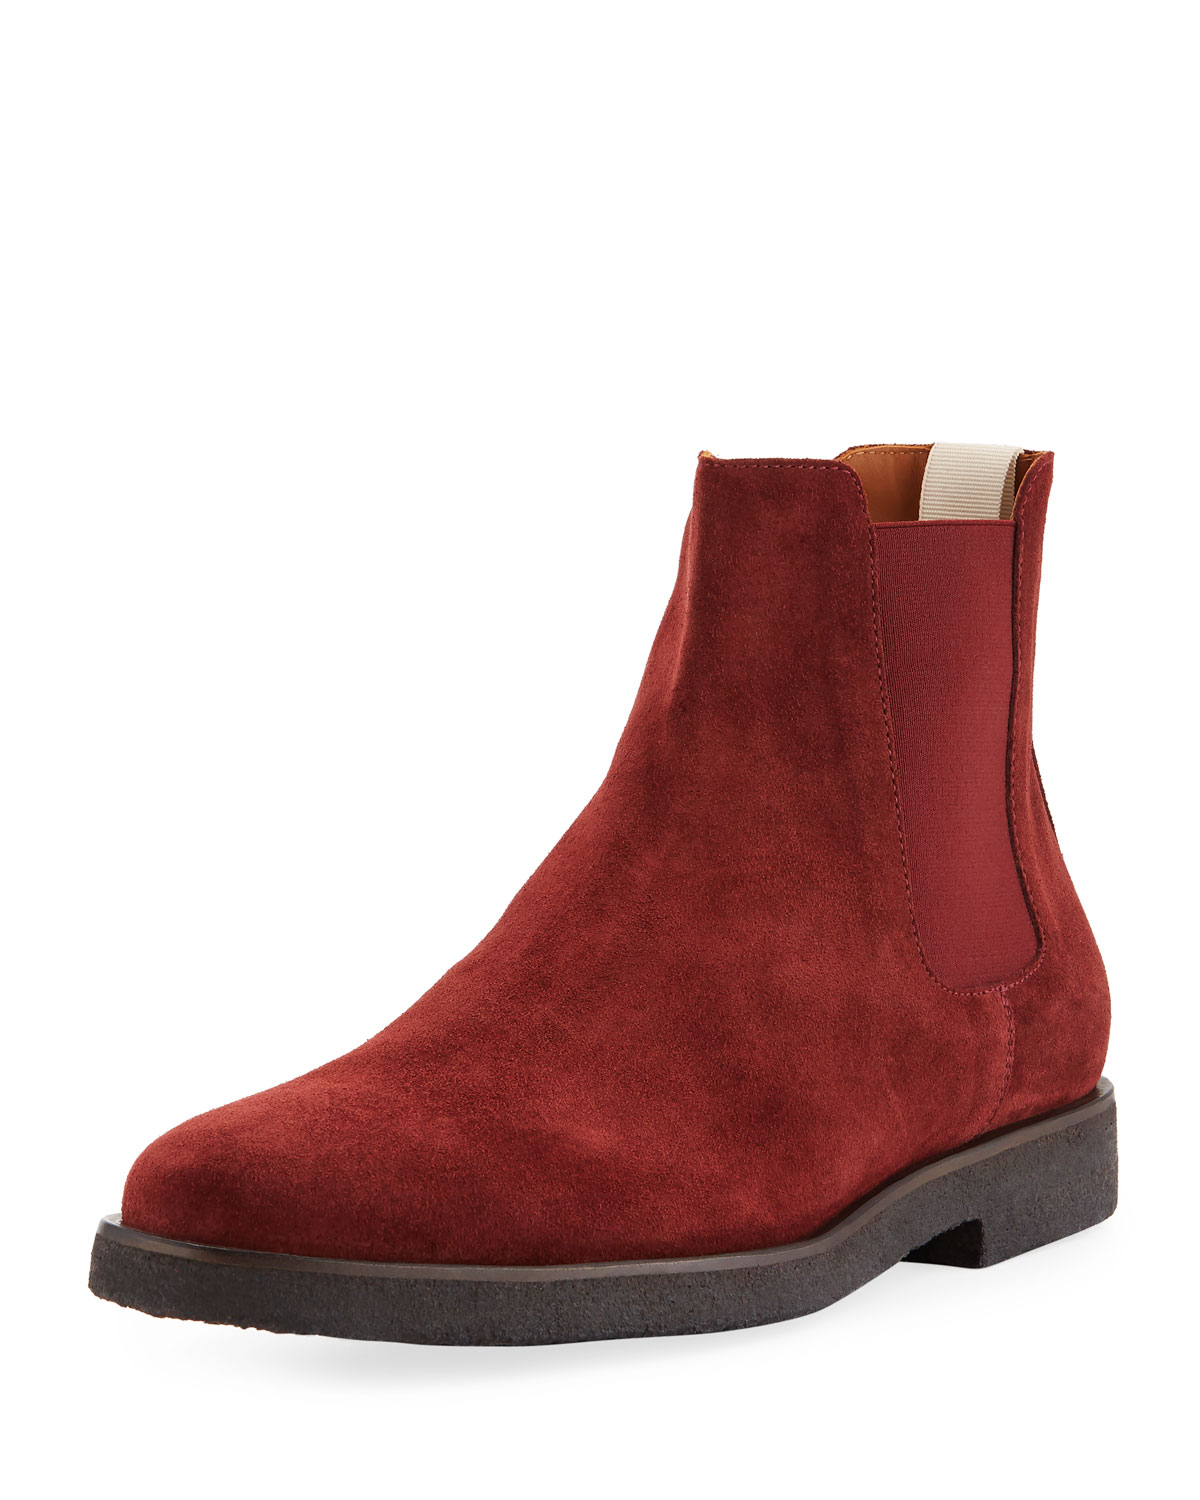 9744ad7d661 Common Projects Men's Calf Suede Chelsea Boots, Red | Neiman Marcus